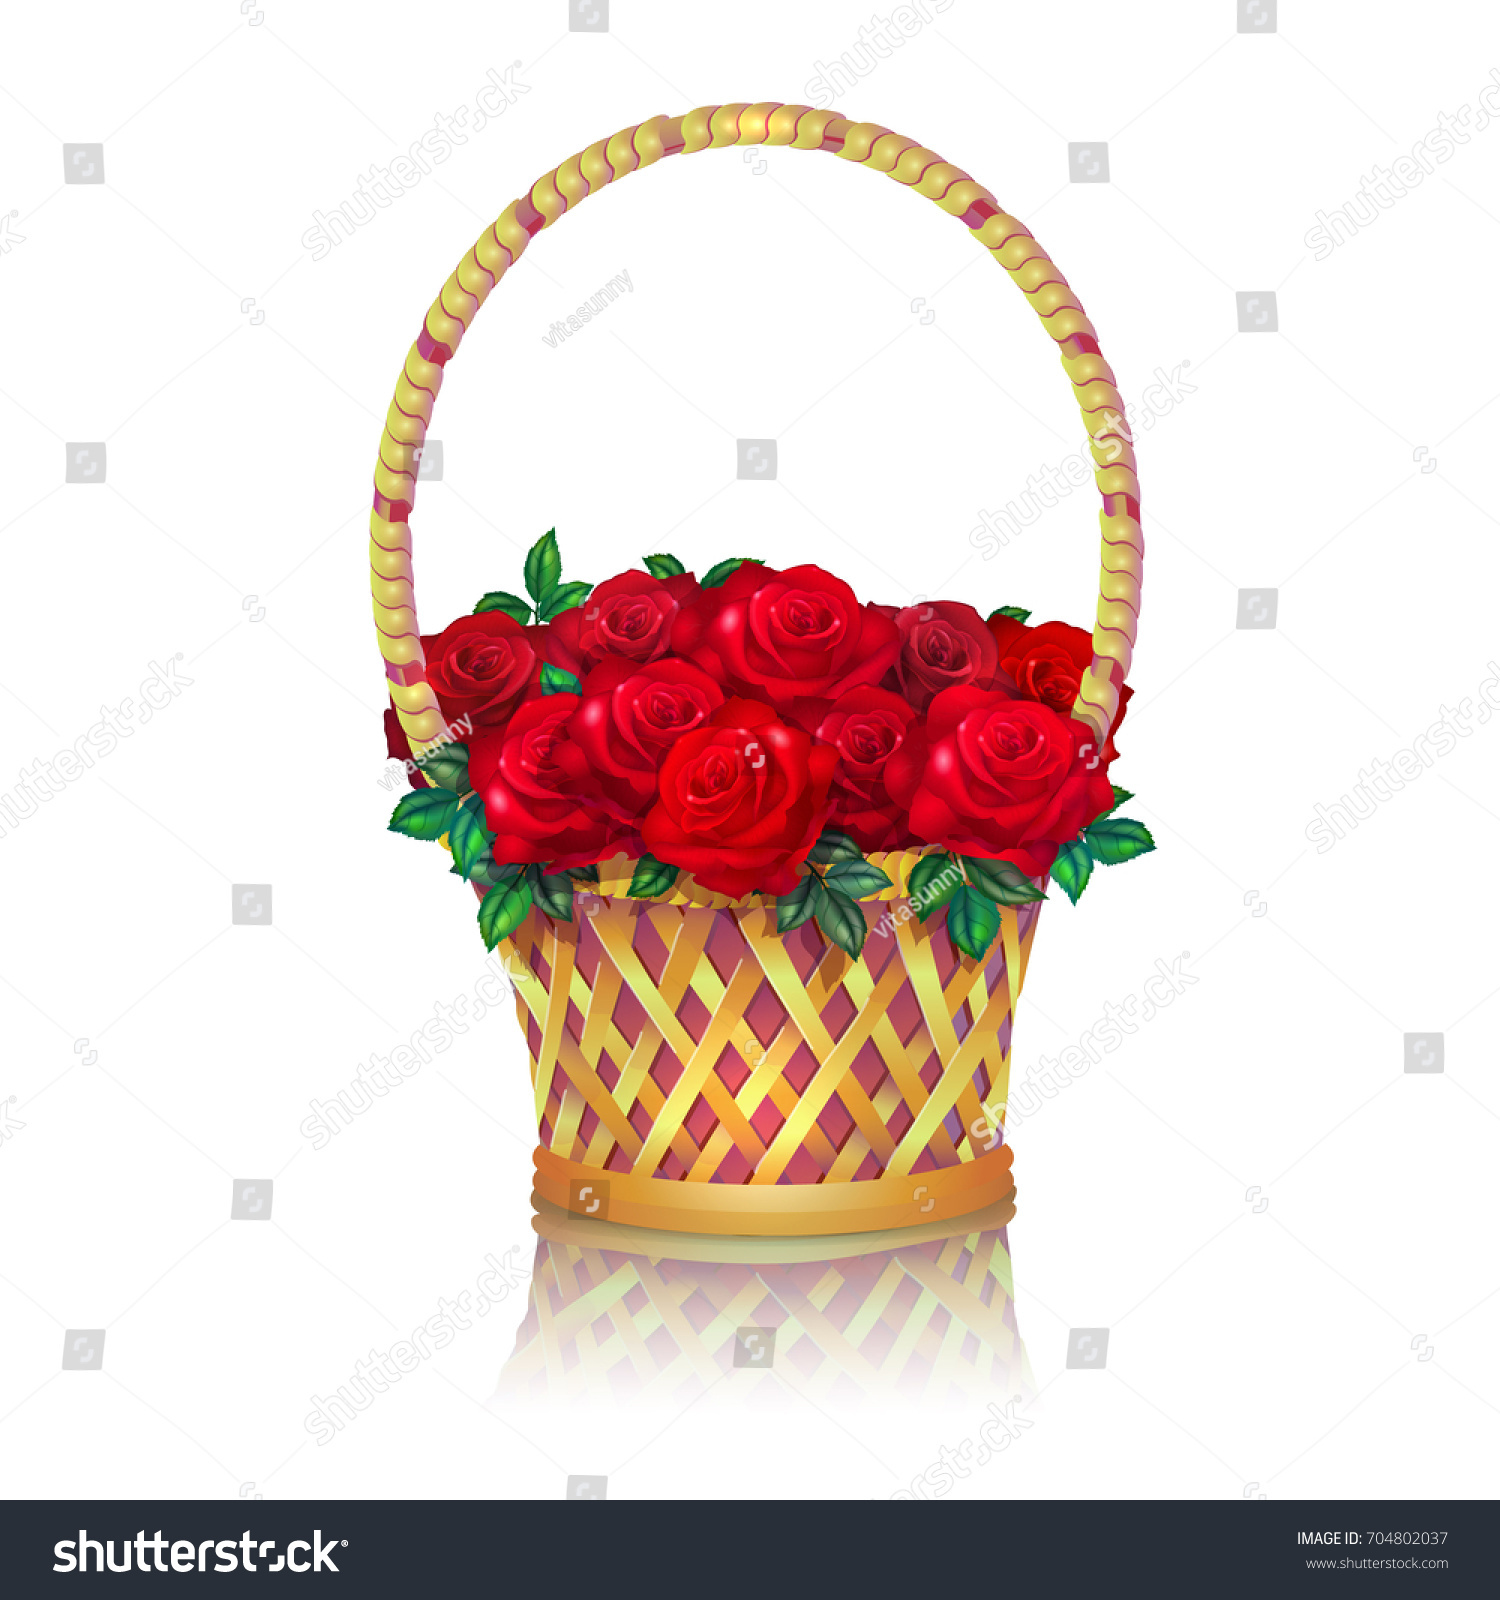 Basket Bouquet Red Roses White Background Stock Vector 704802037 ...